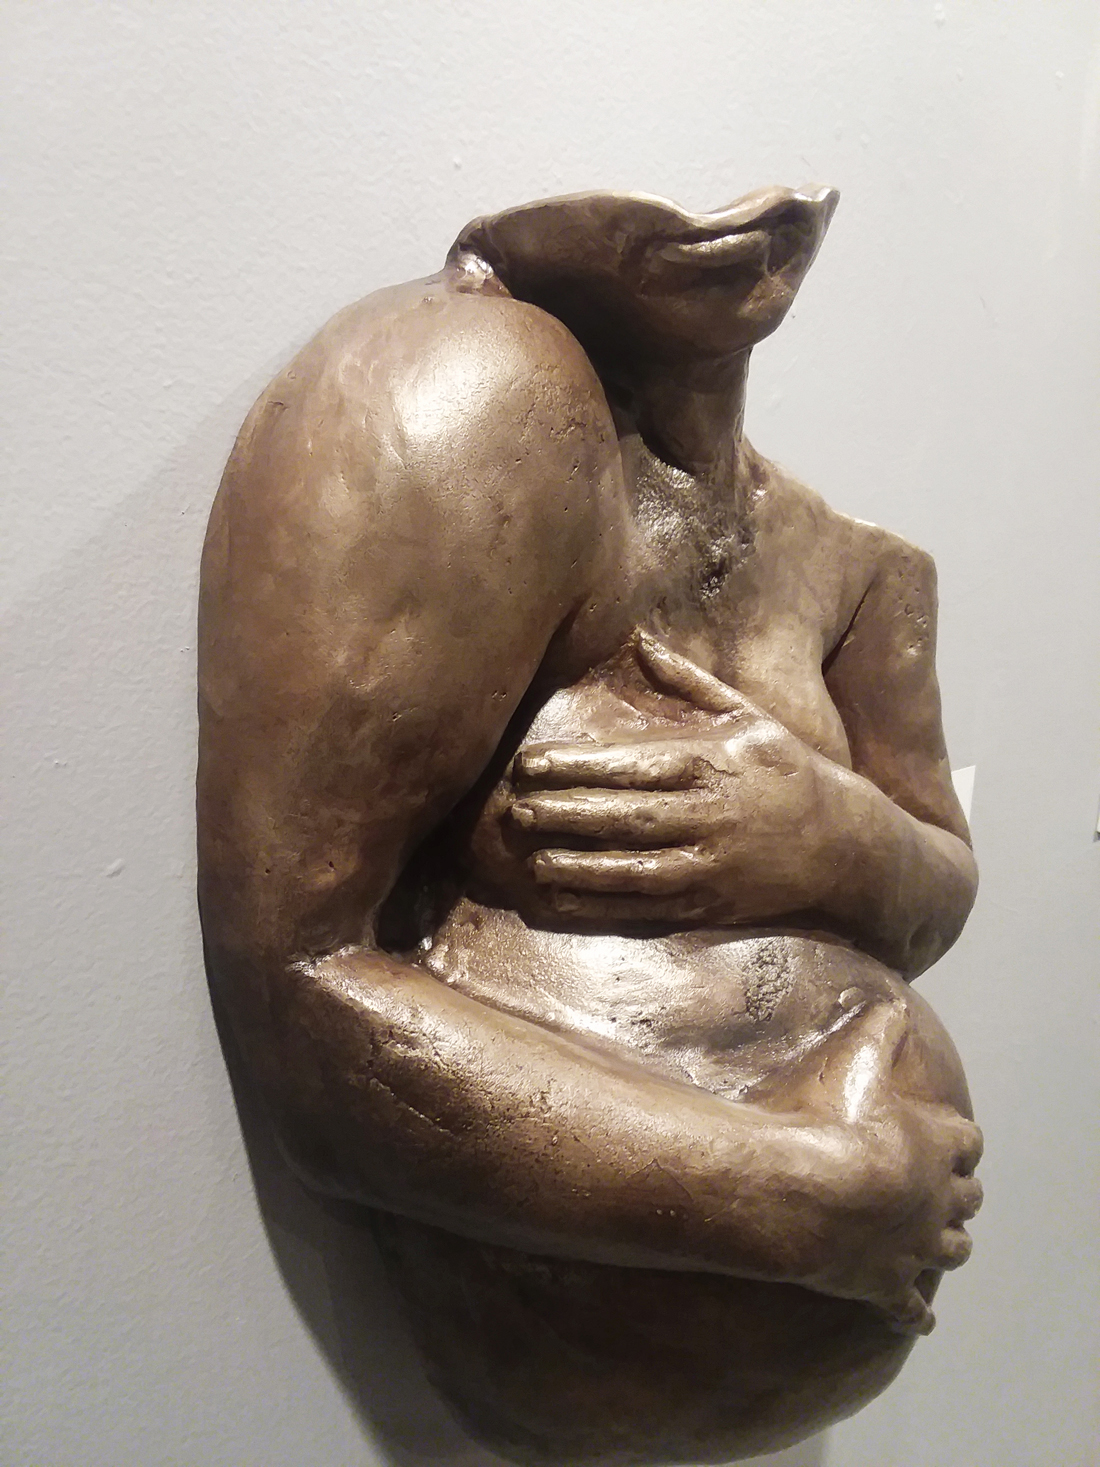 A bronze sculpture of a person holding their chest and stomach.